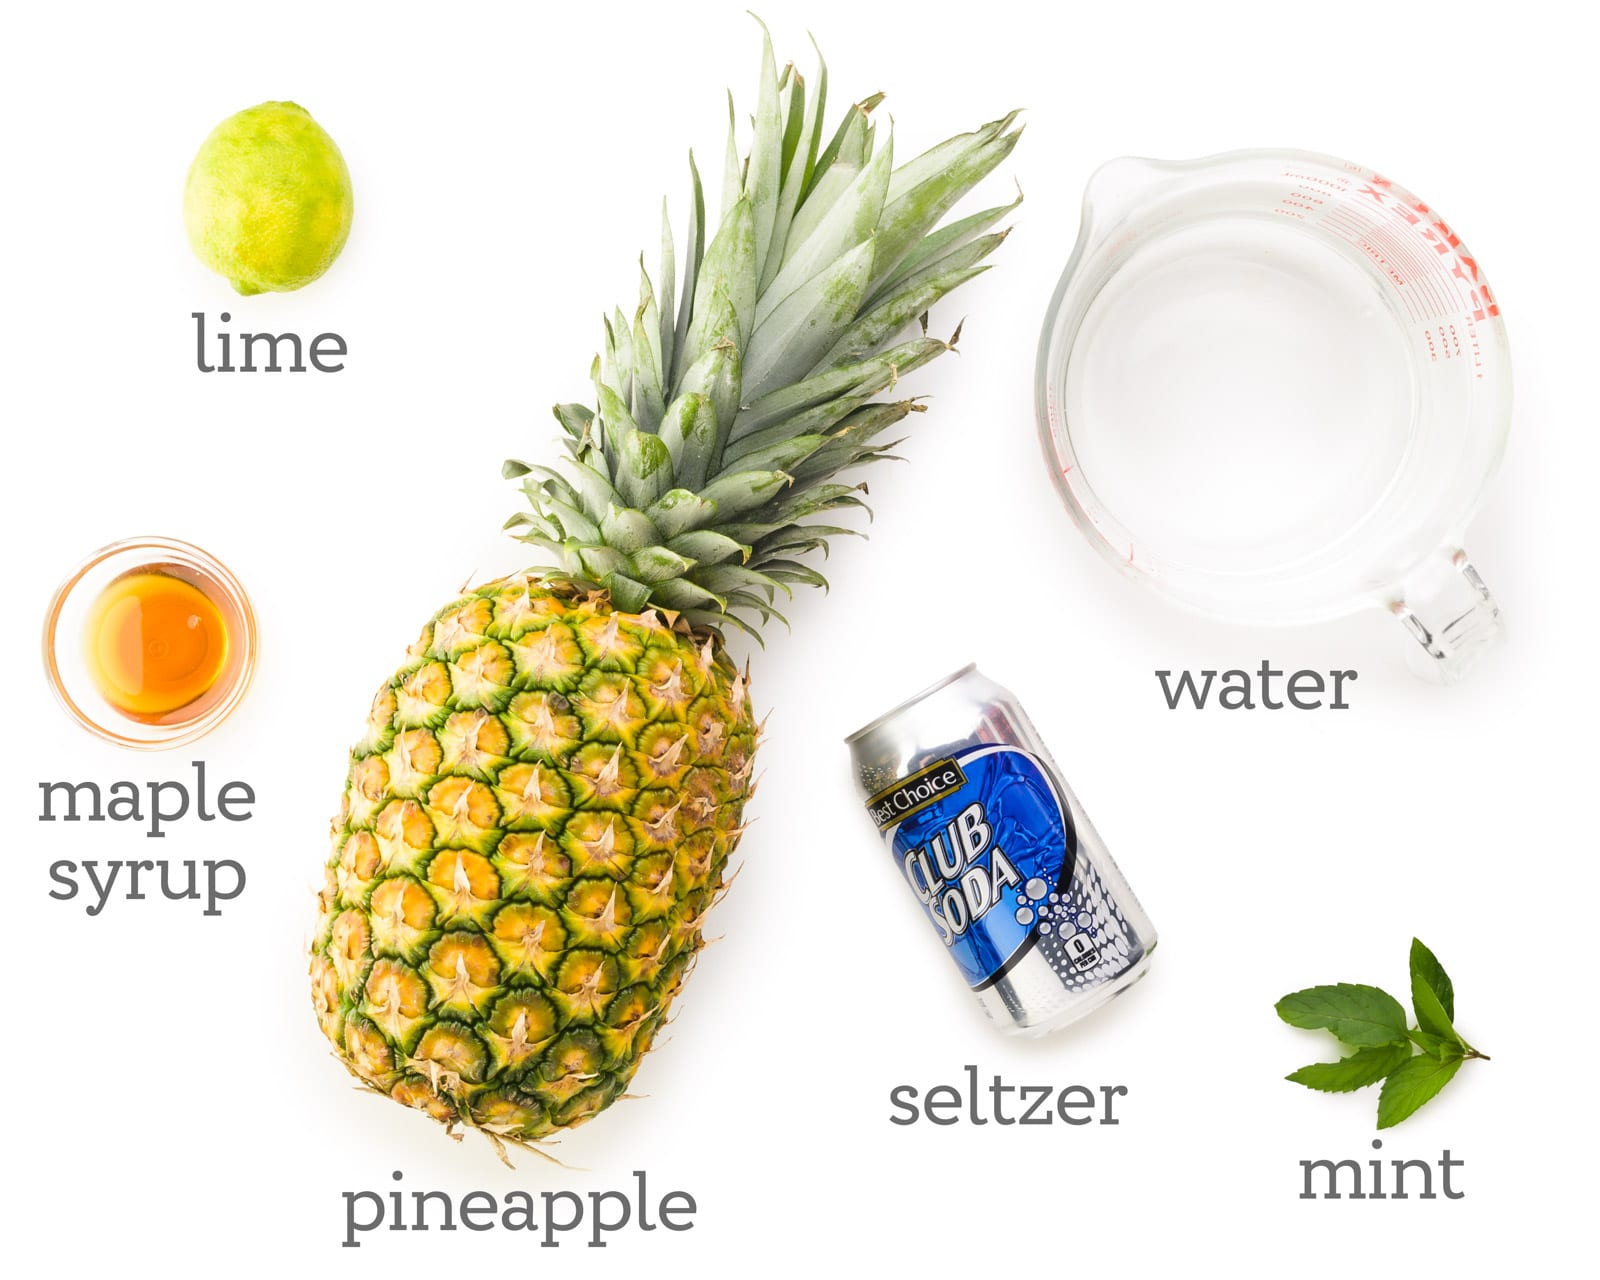 Ingredients are laid out on a white table. The labels next to them read, water, mint, seltzer, pineapple, maple syrup, and lime.